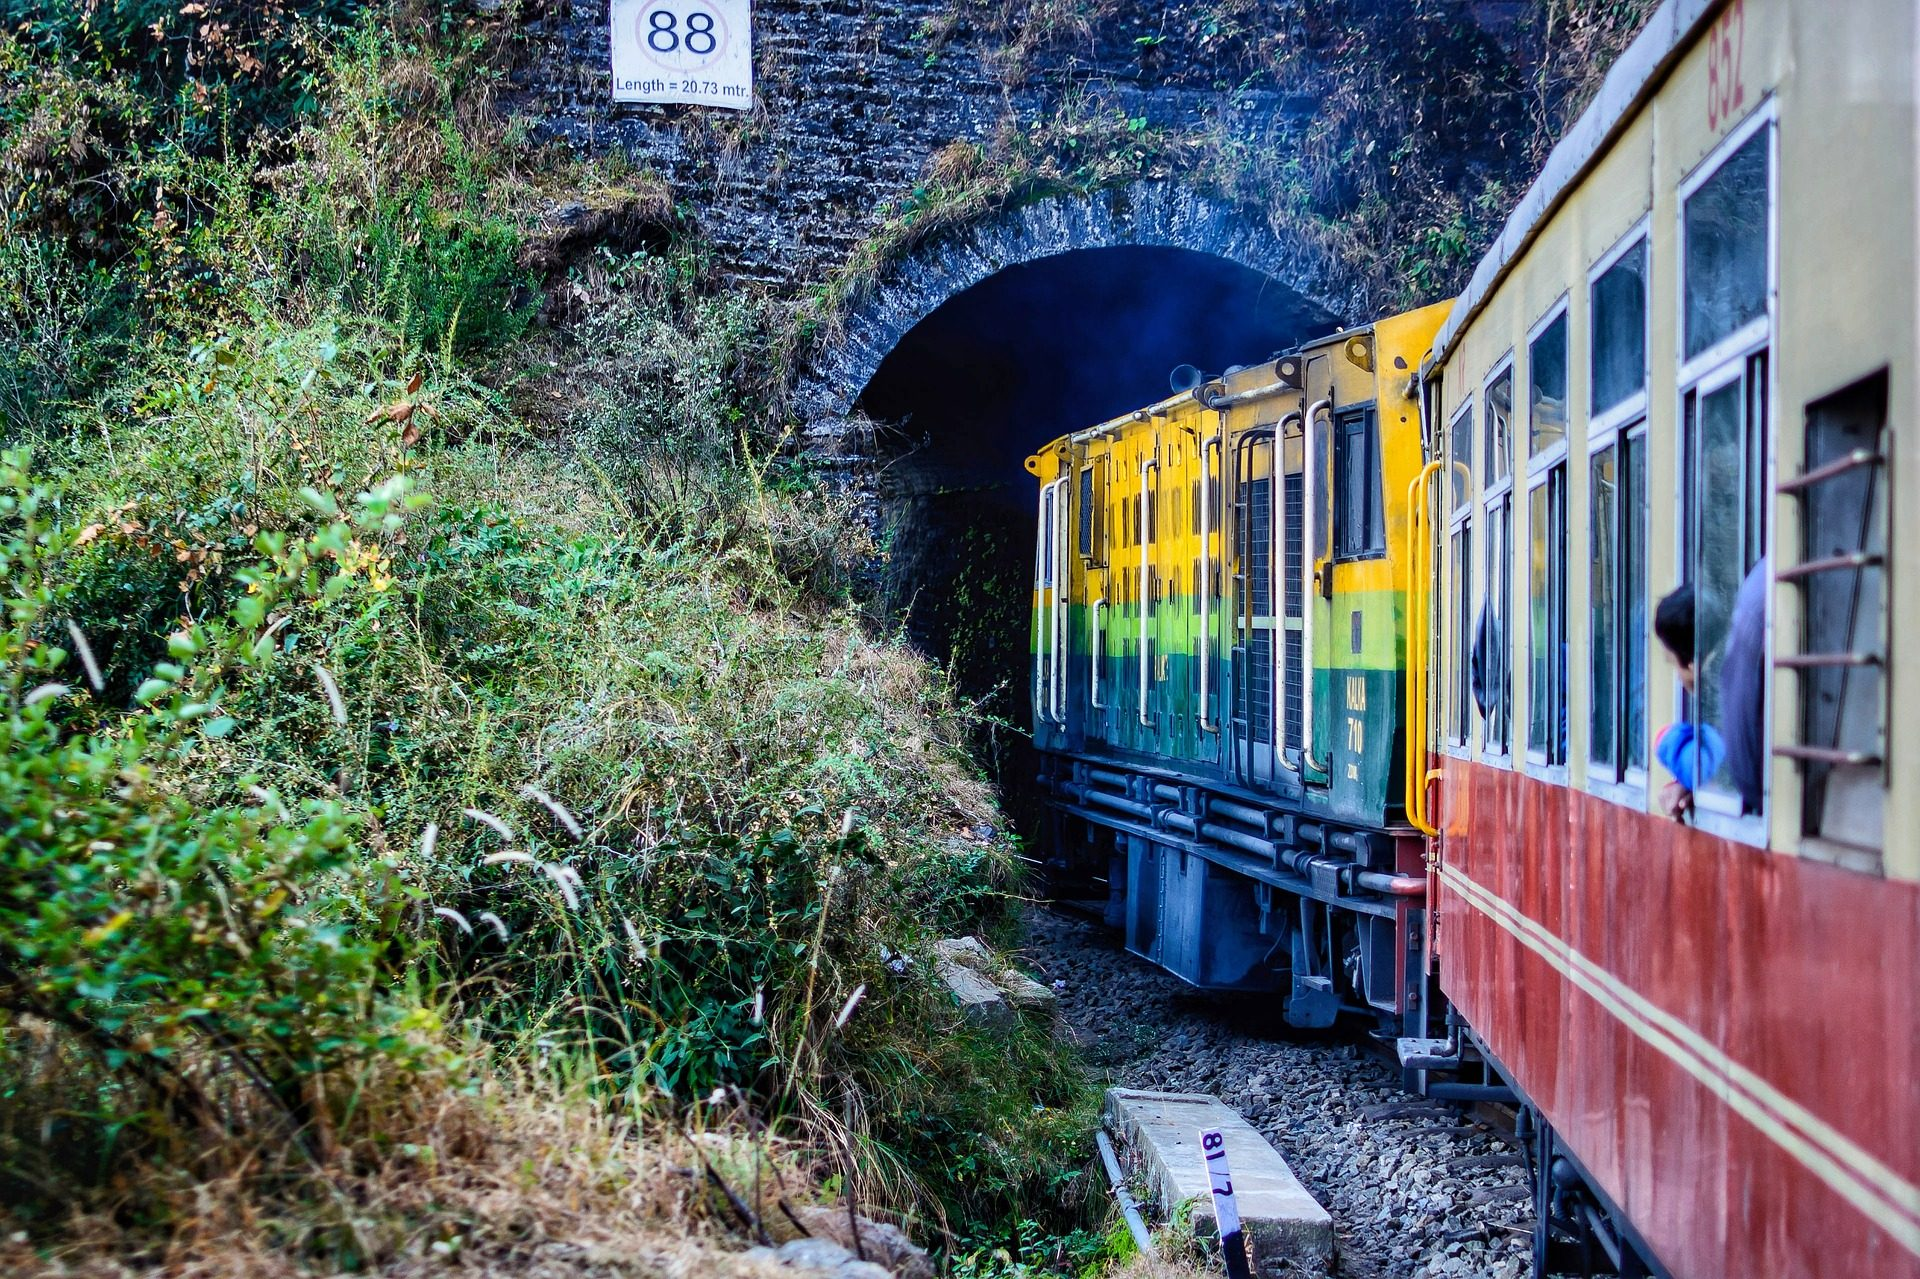 train, passagers, tunnel, voyage, wagons, Tourisme - Fonds d'écran HD - Professor-falken.com